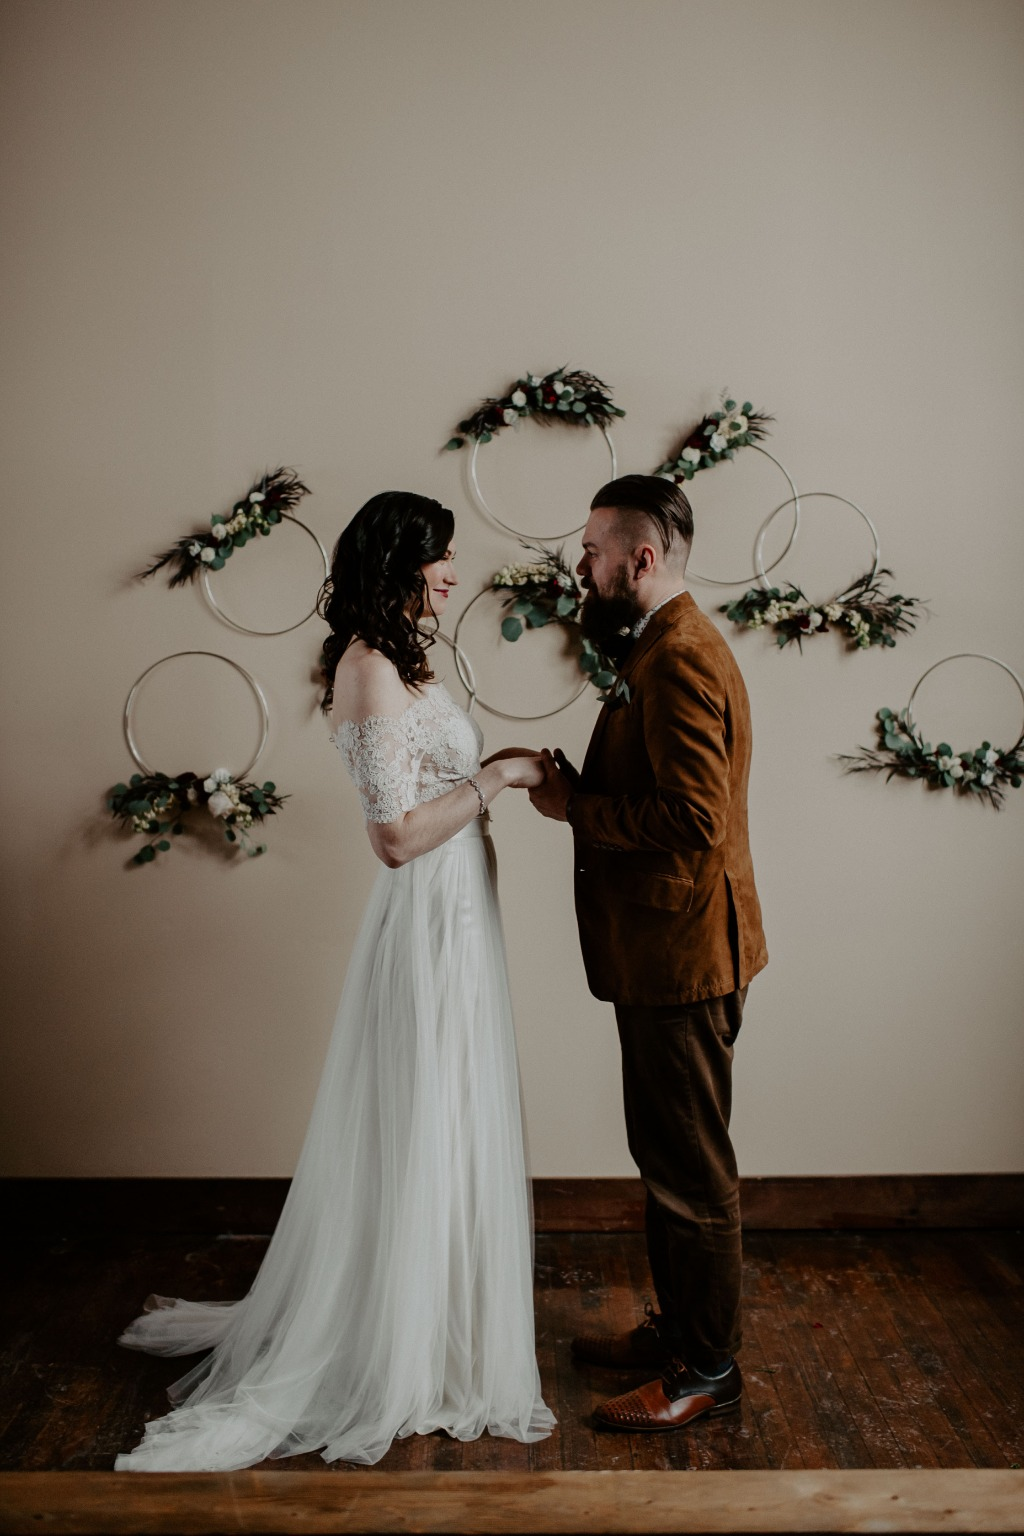 Moody Winter Wedding Inspiration With a Blend of Vintage + Modern Style | wedding dress: Lea-Ann Belter Bridal Laurel top + May skirt